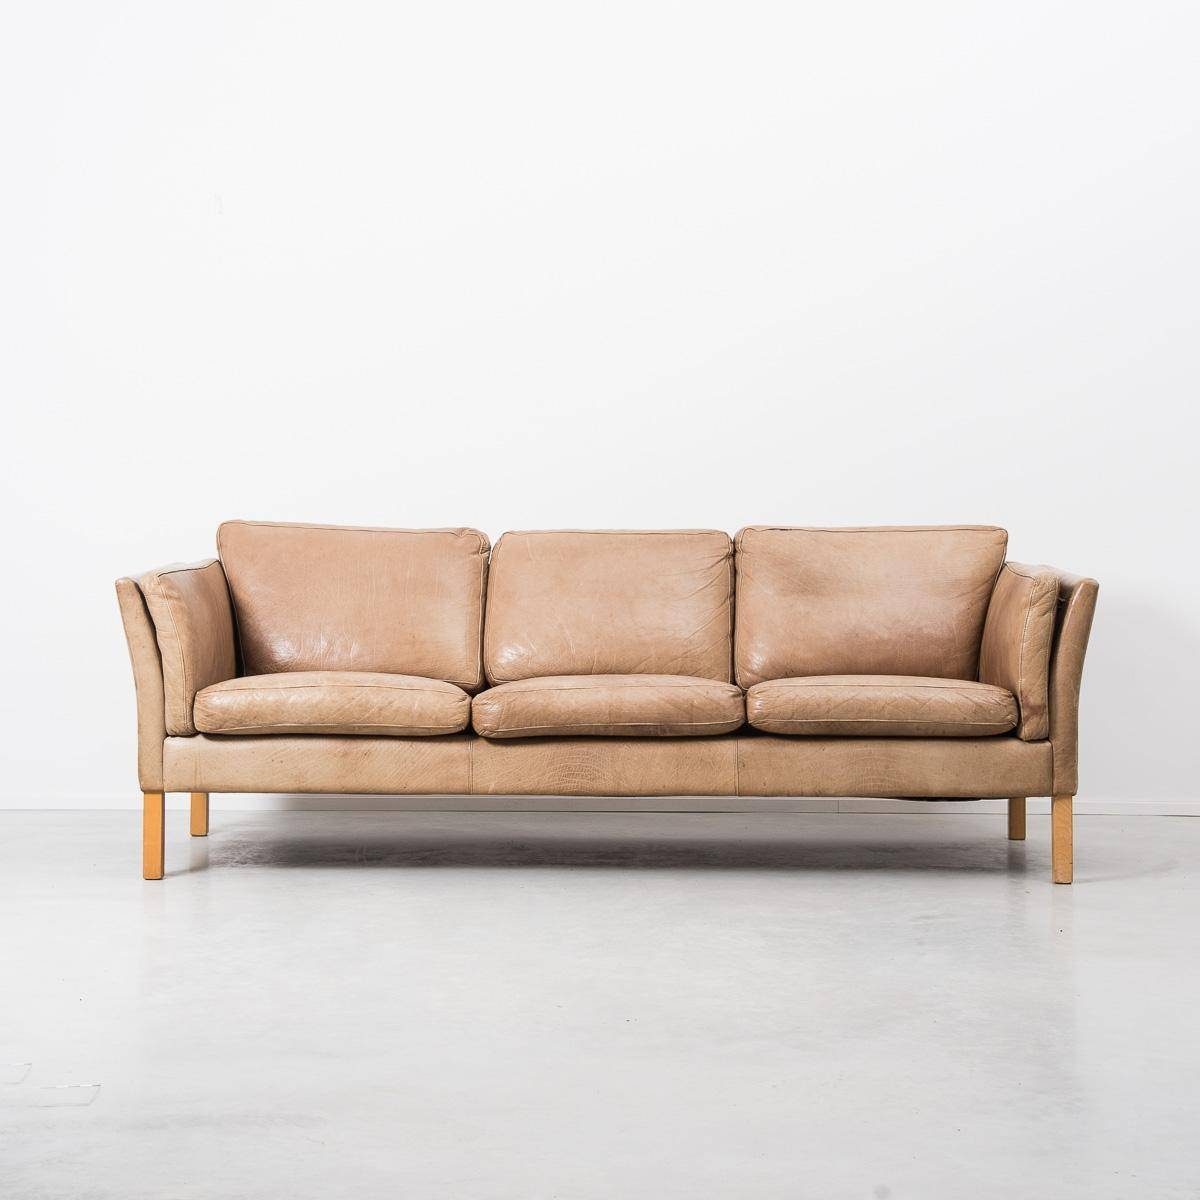 Light Tan Leather Sofa - Design-Maroc inside Light Tan Leather Sofas (Image 21 of 30)